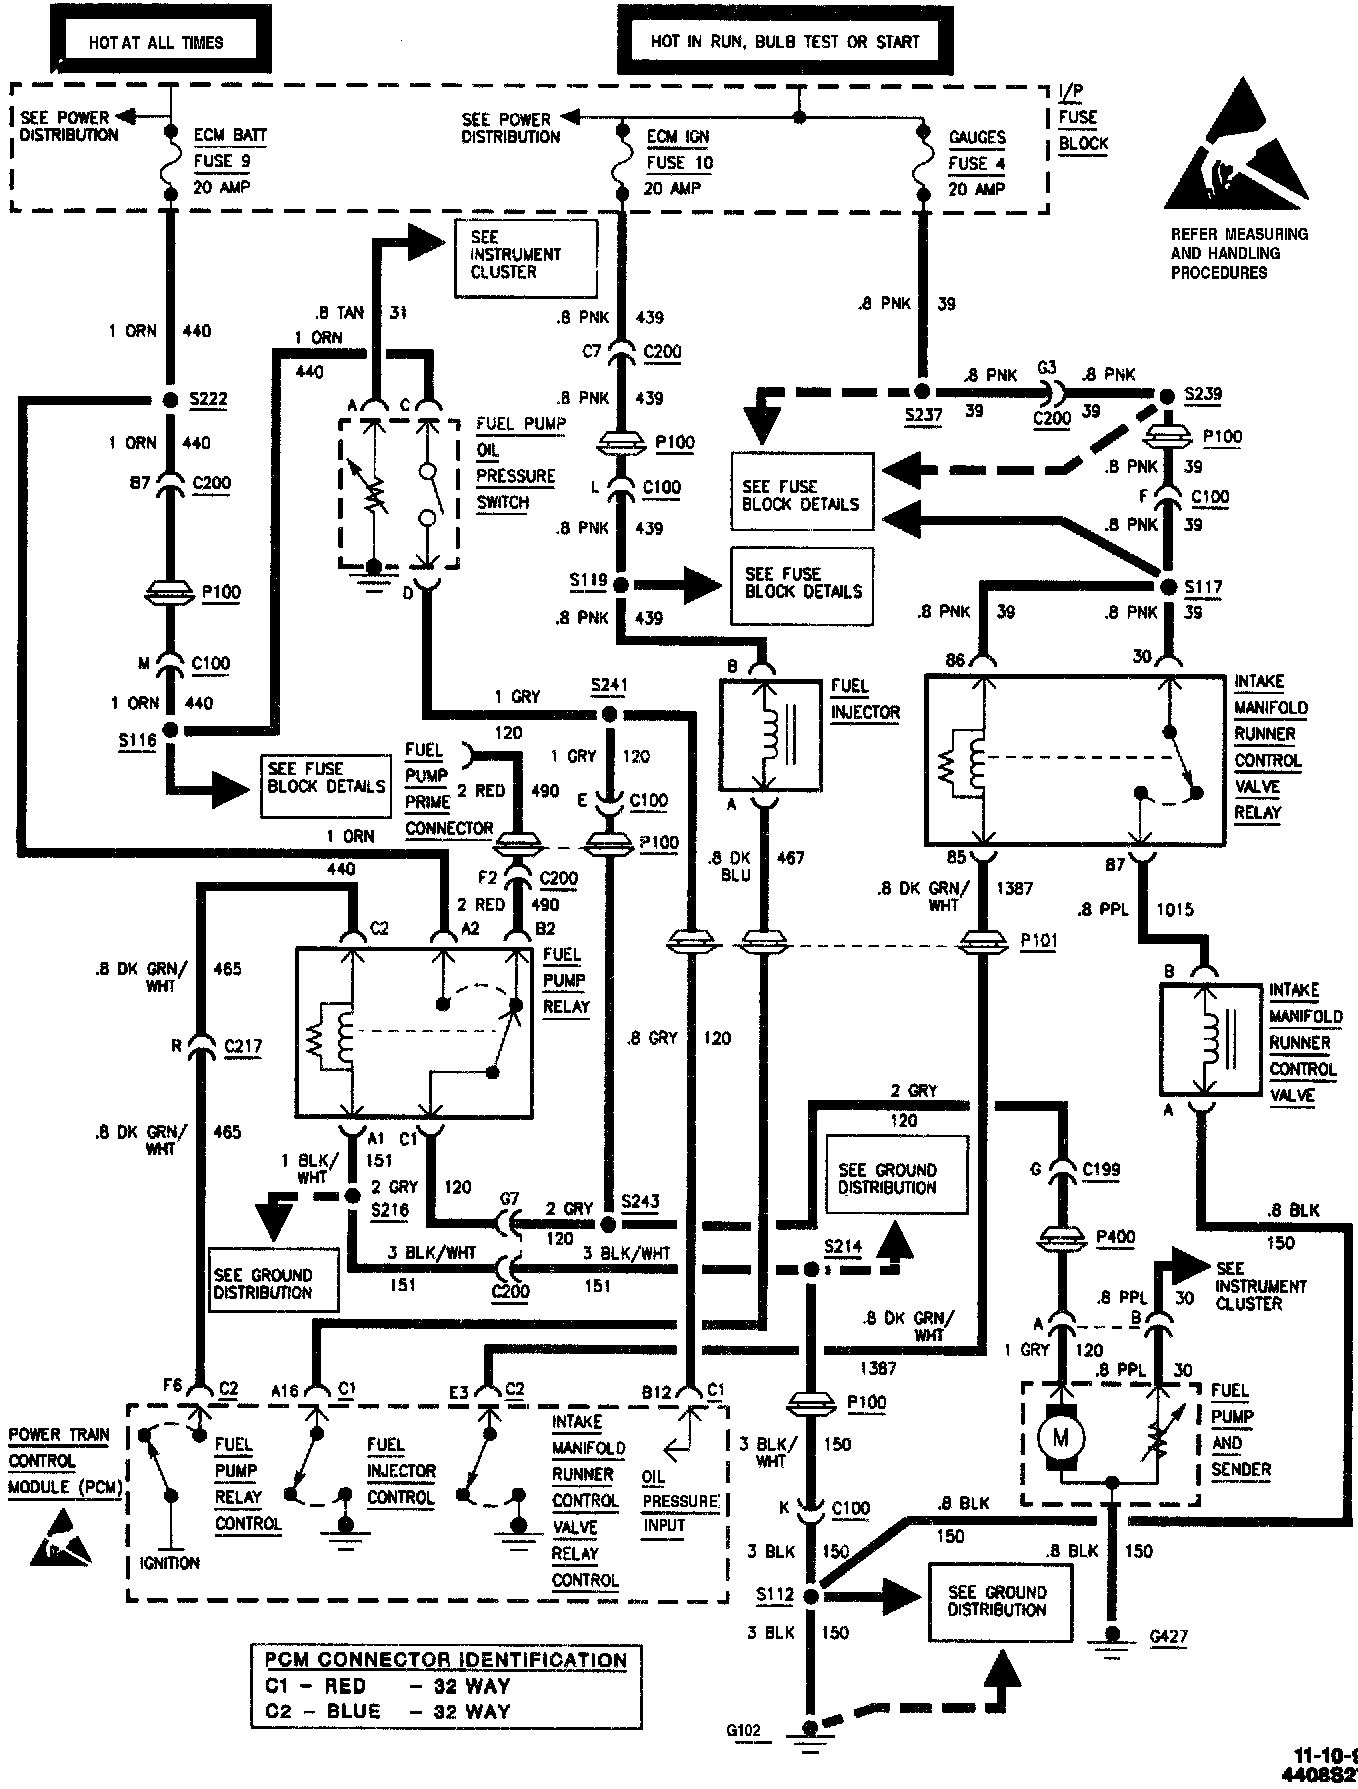 Wiring Diagram For 1991 Chevy Lumina Wiring Get Free